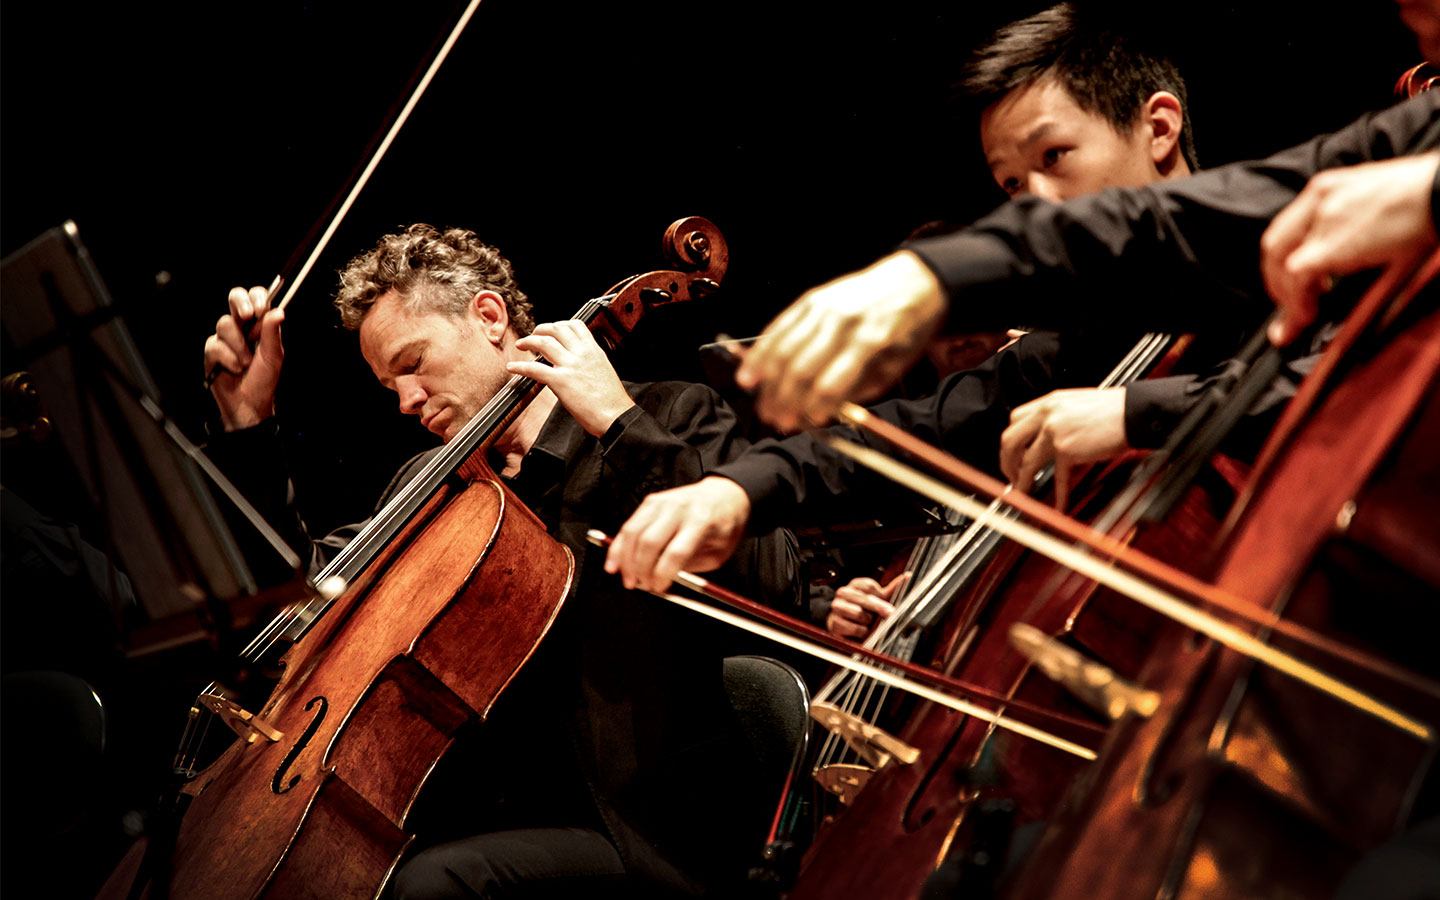 ACO Cellist Julian Thompson performing onstage